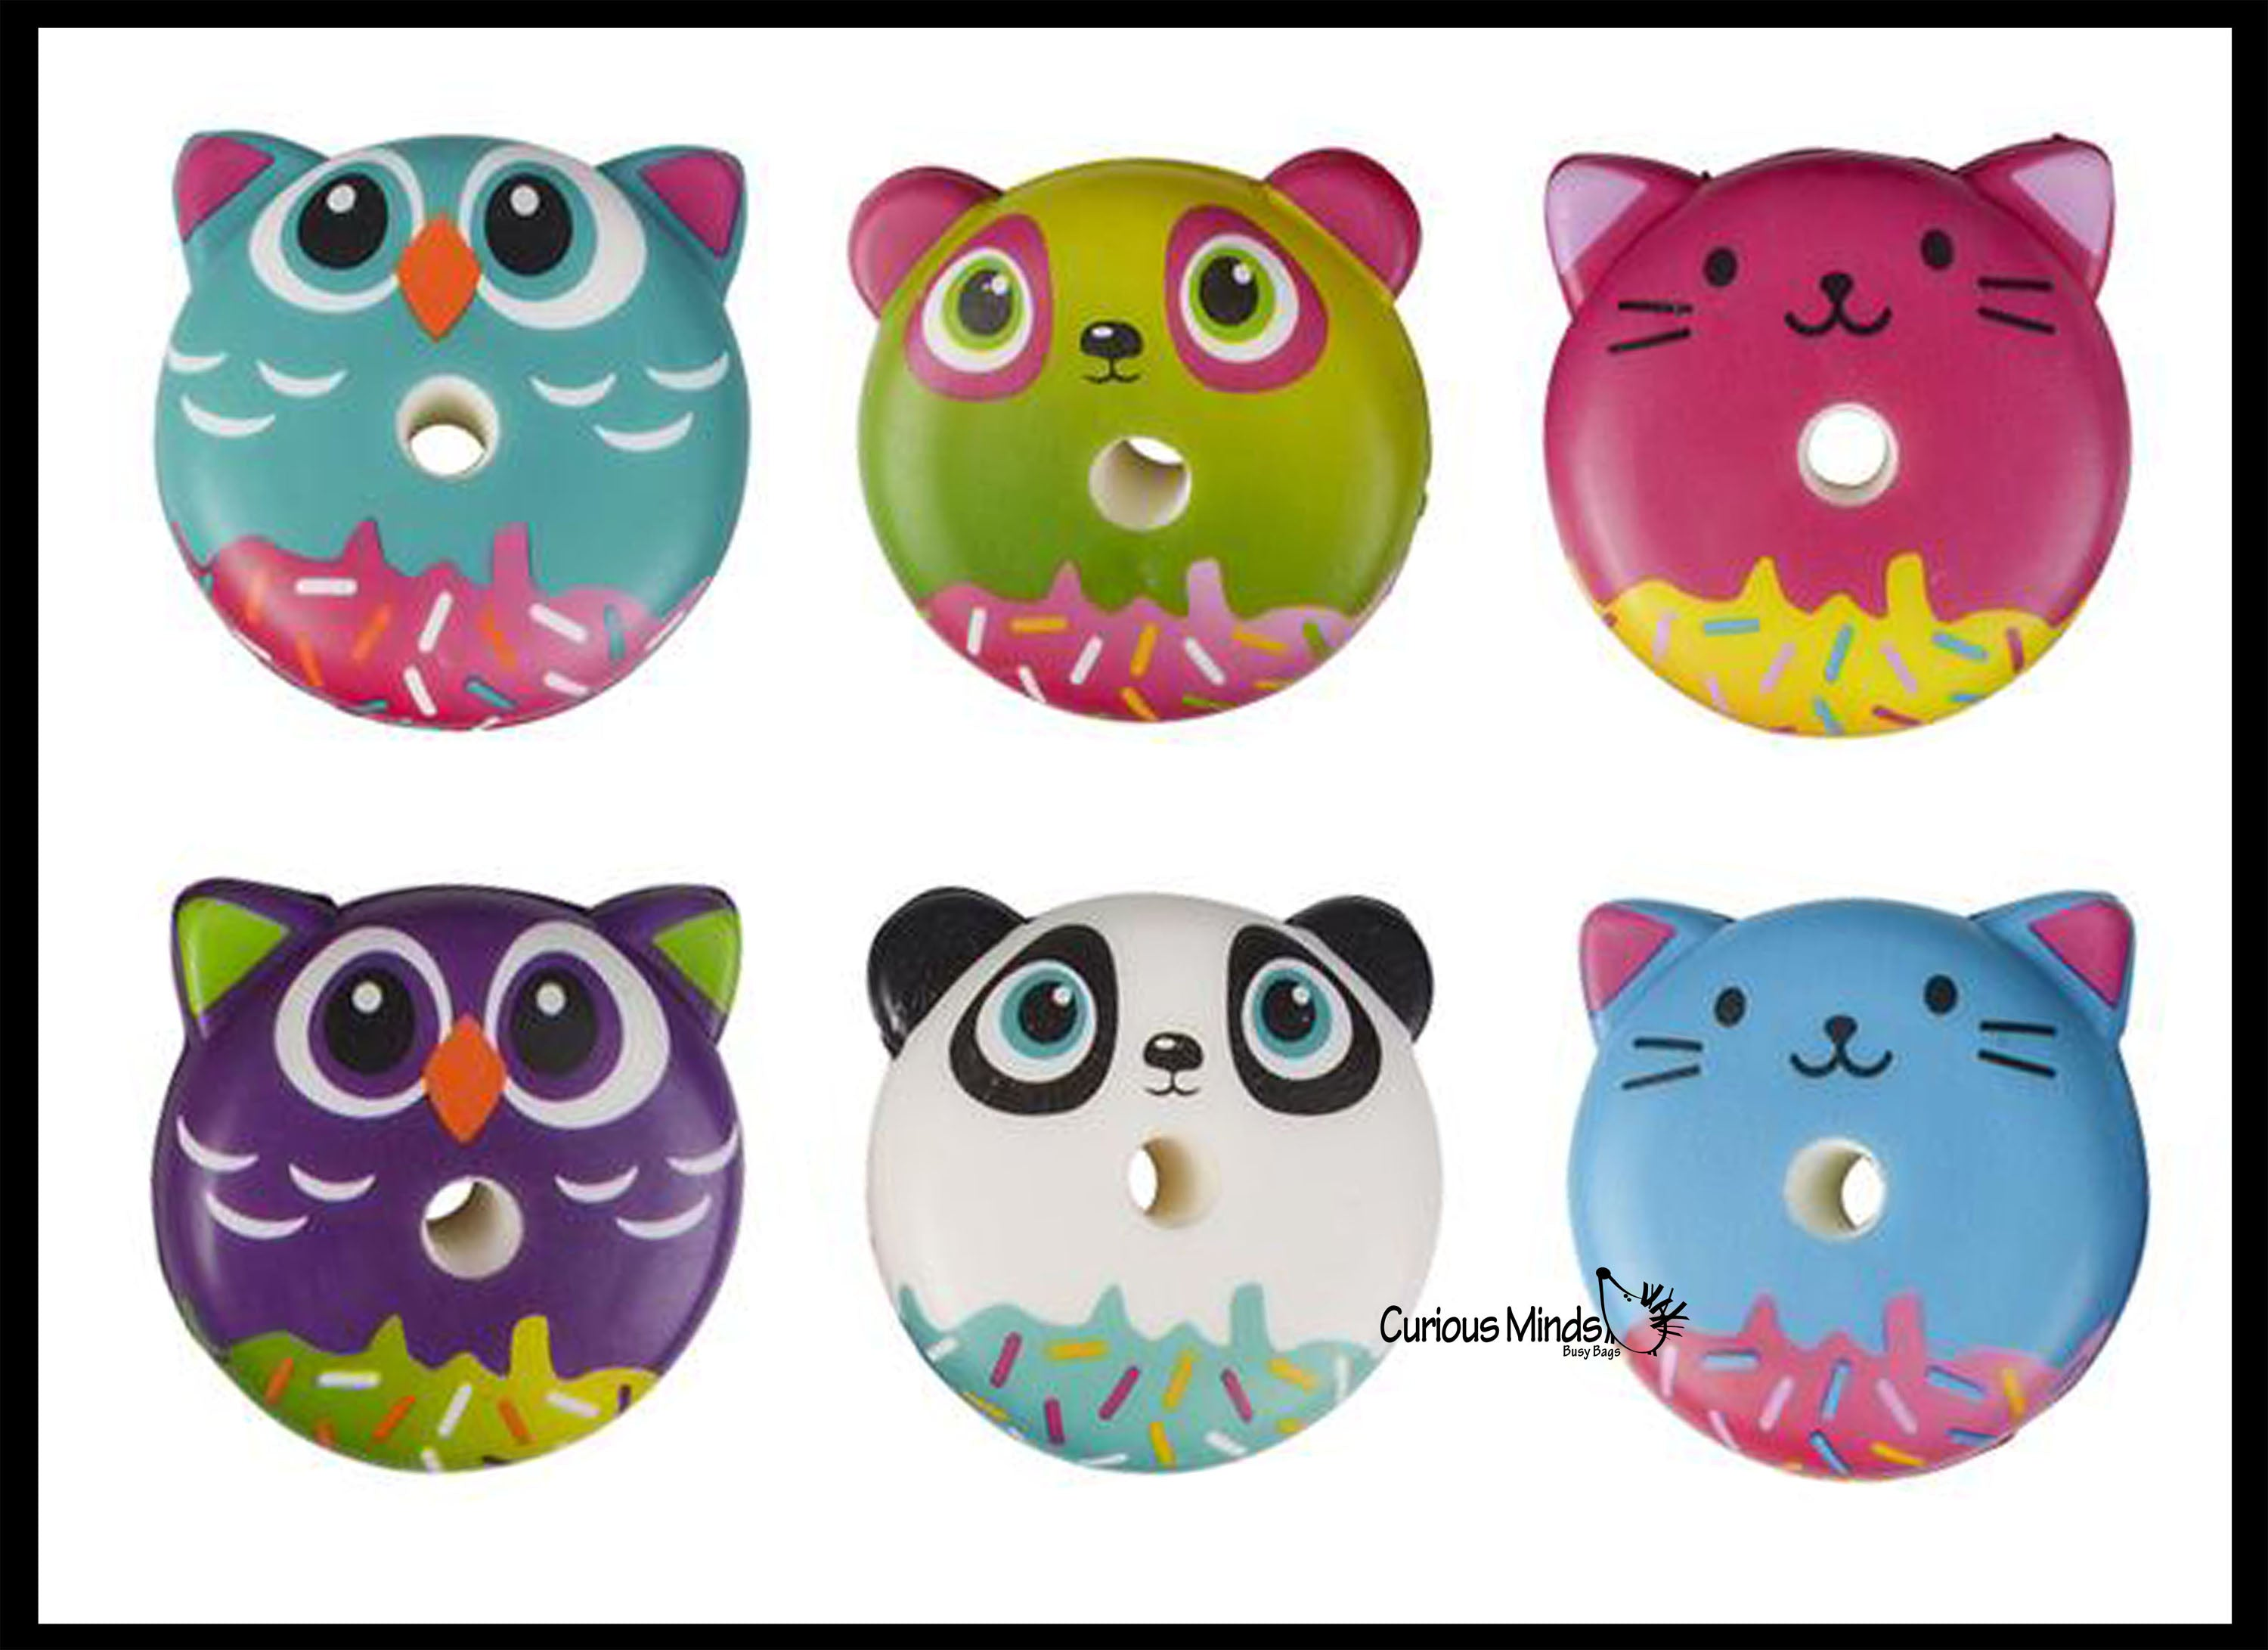 Squishy Slow Rise Donut Animals - Cat, Panda, Owl -  Scented Sensory, Stress, Fidget Toy